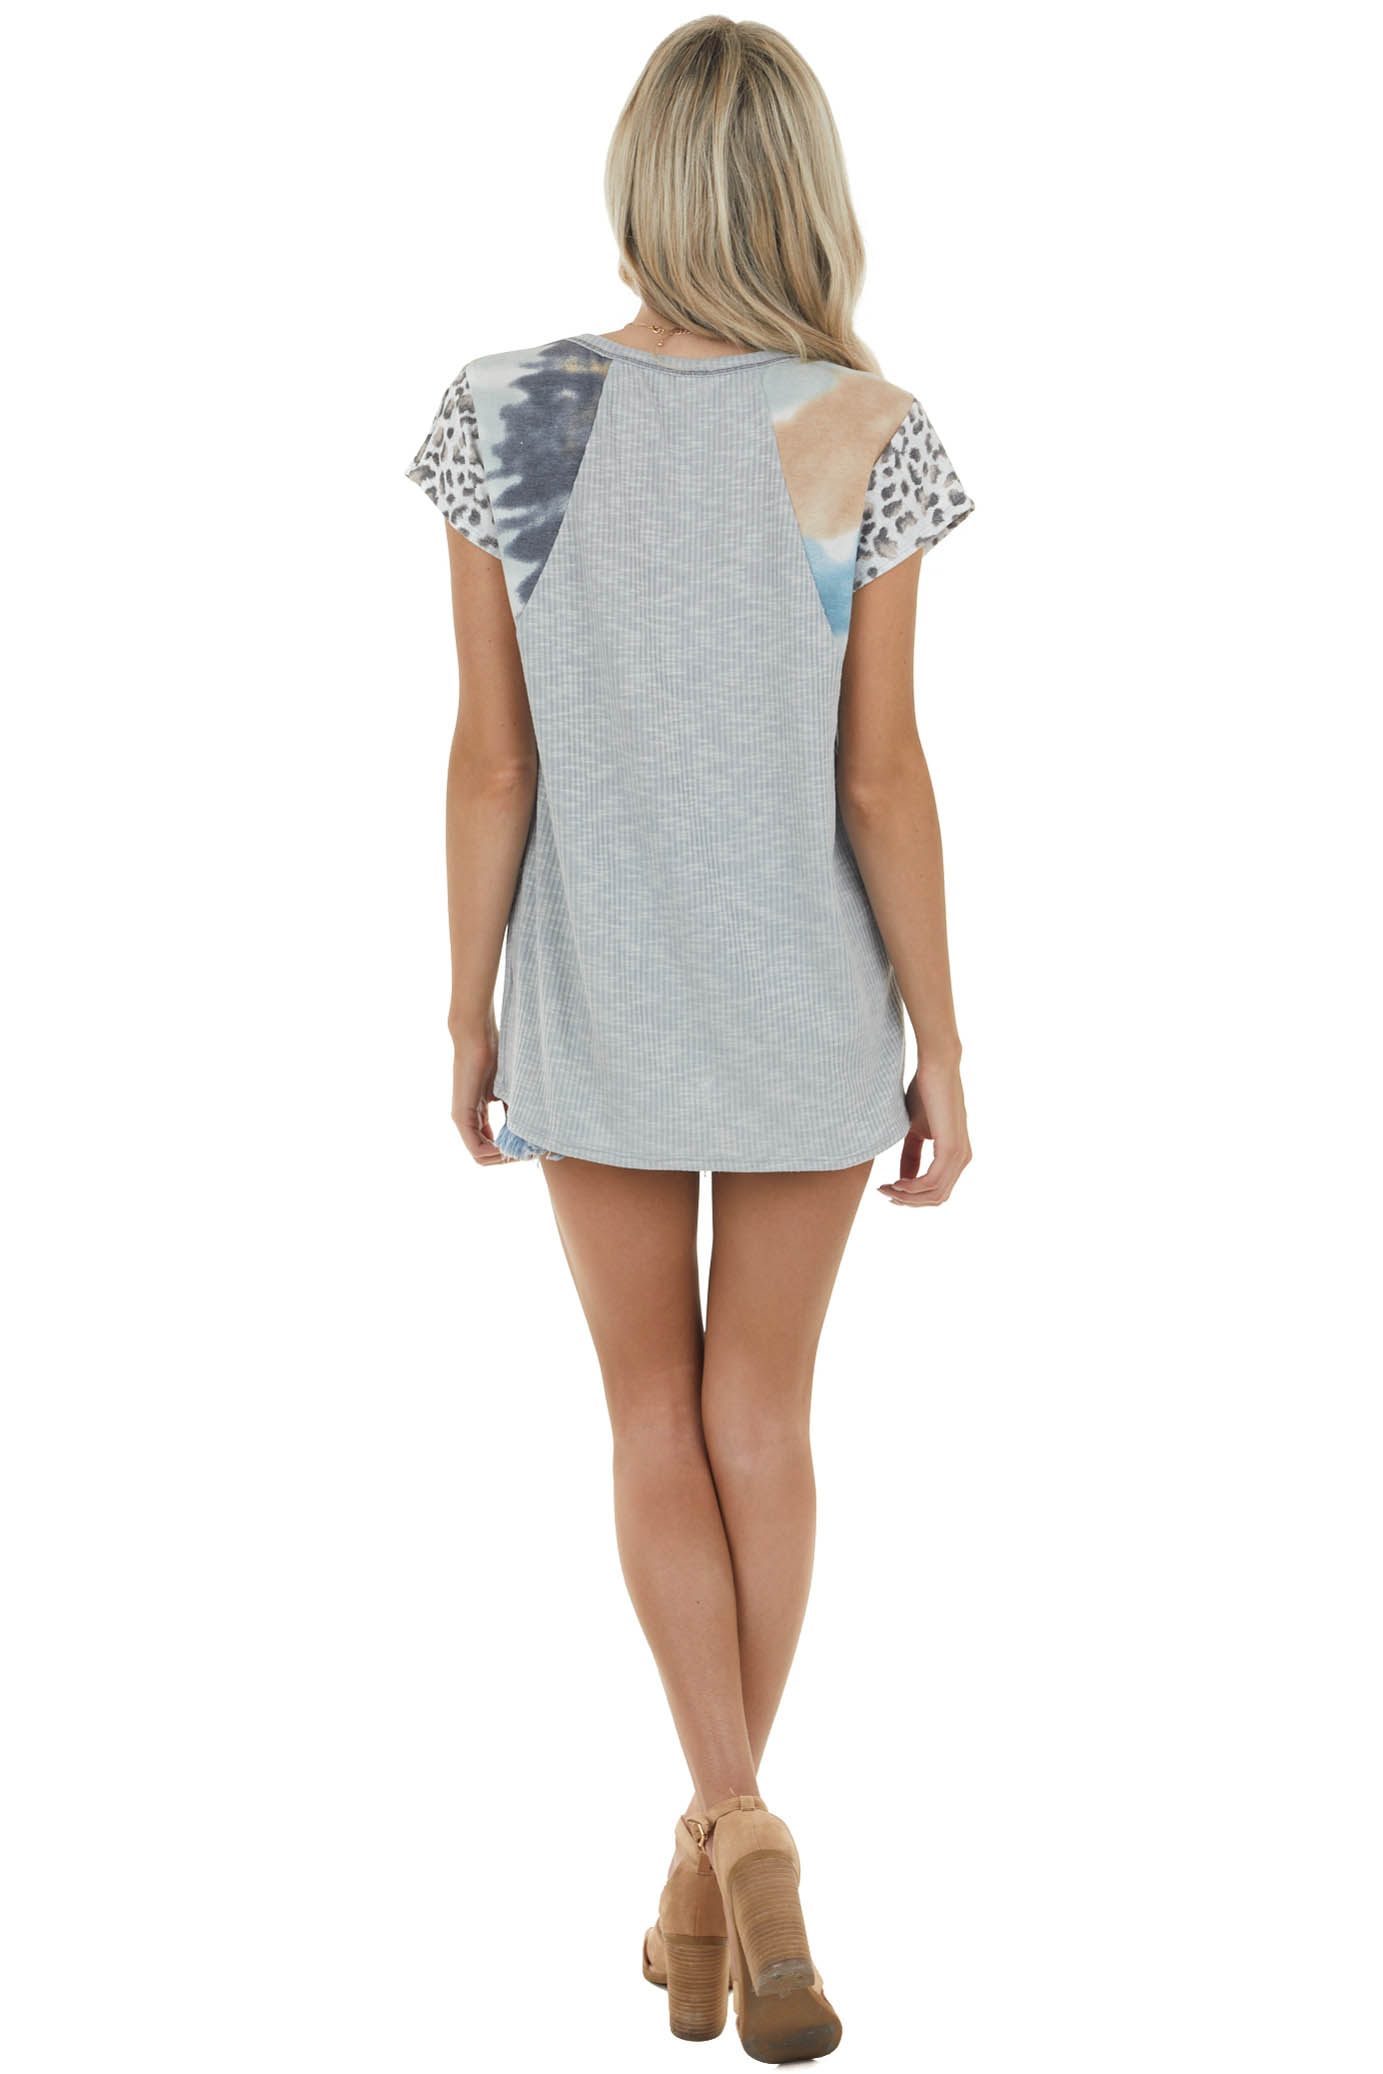 Slate Grey Ribbed Knit Top with Multiprint Short Sleeves